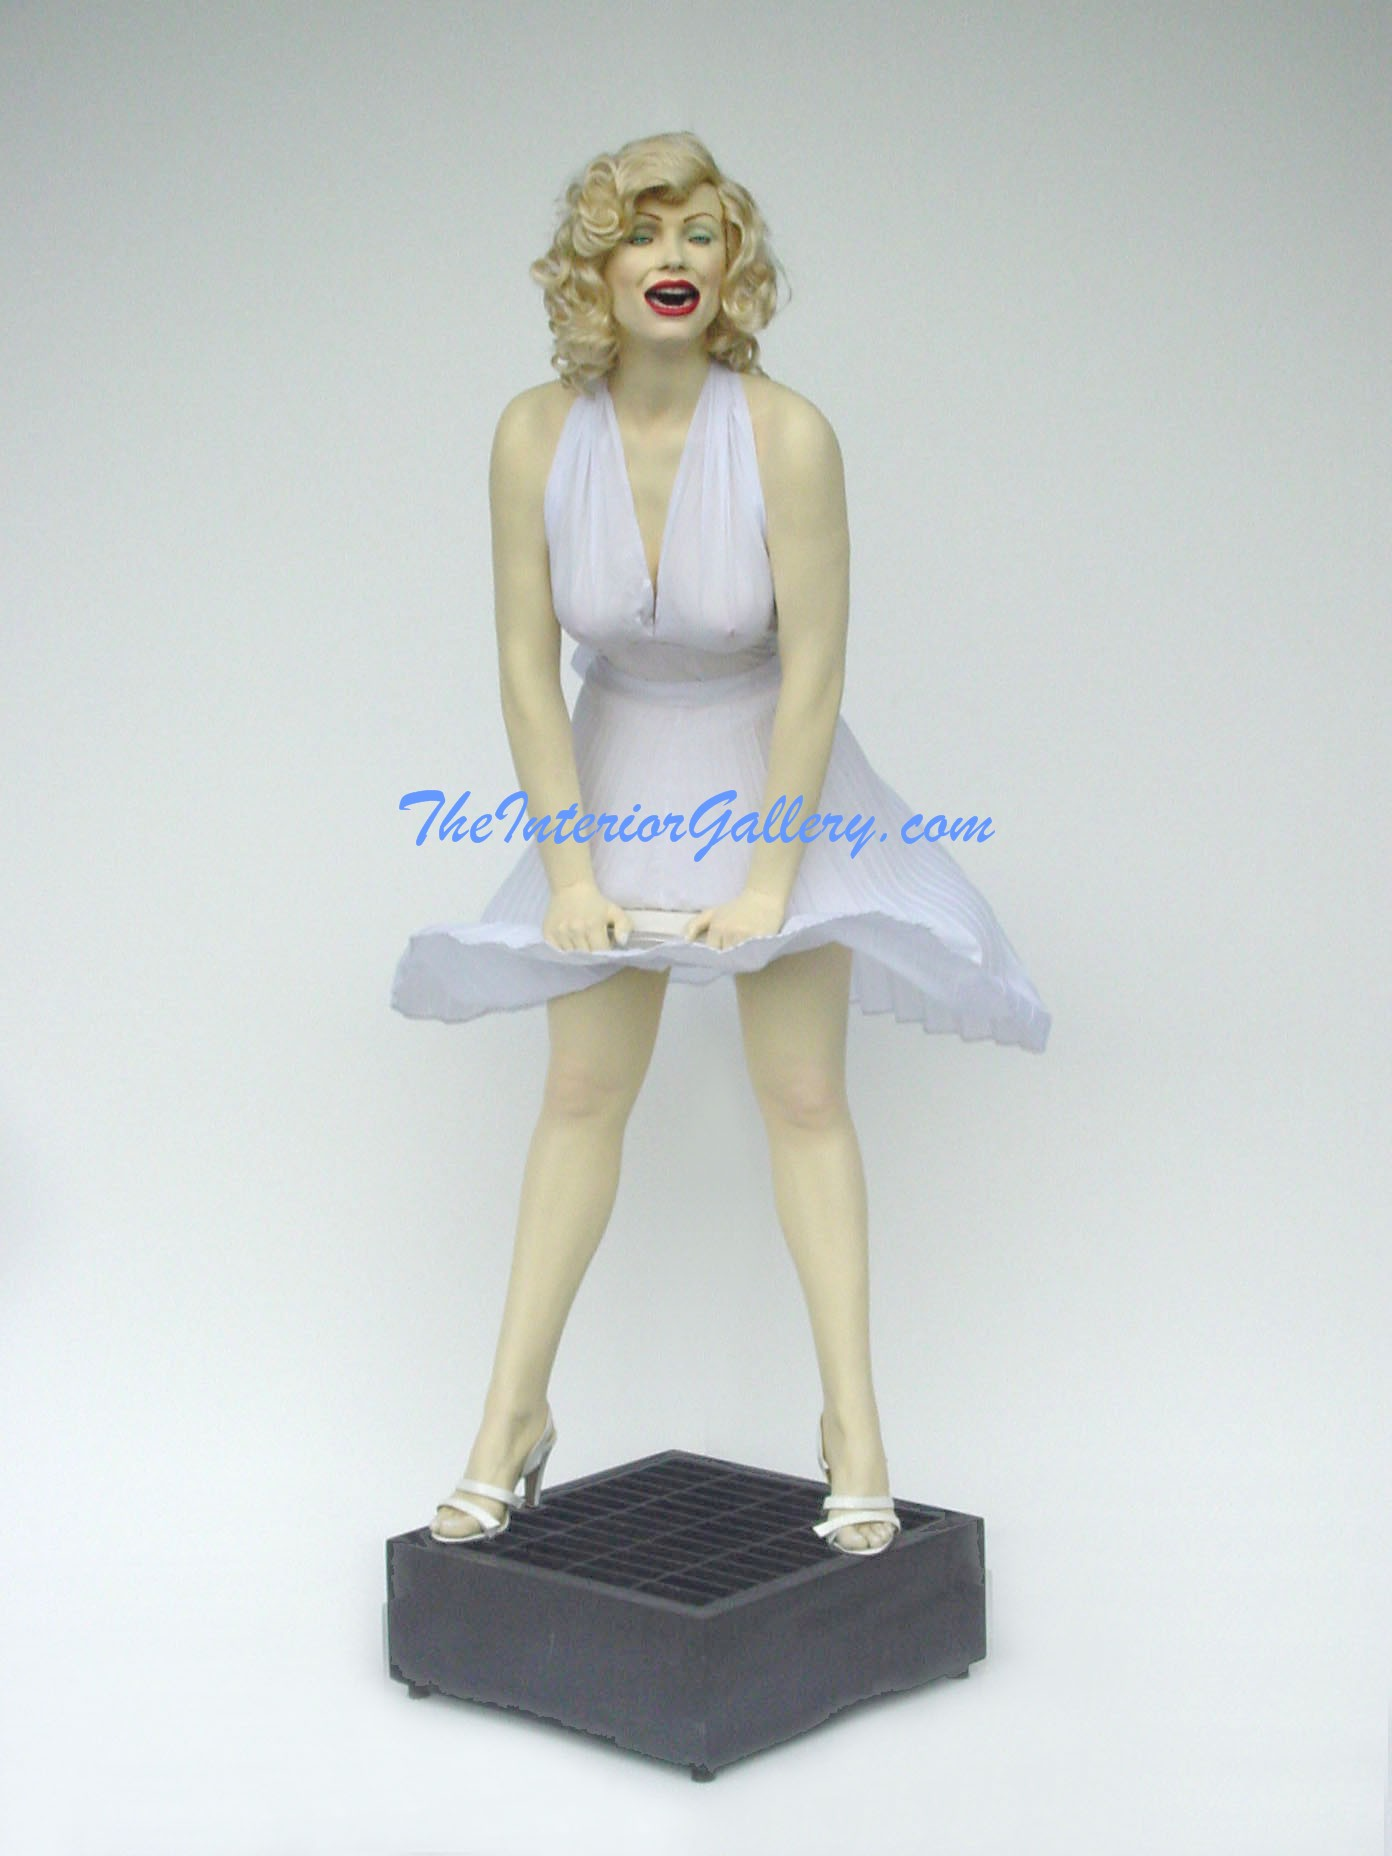 Actress Life Size Statue Real in White Dress 6FT